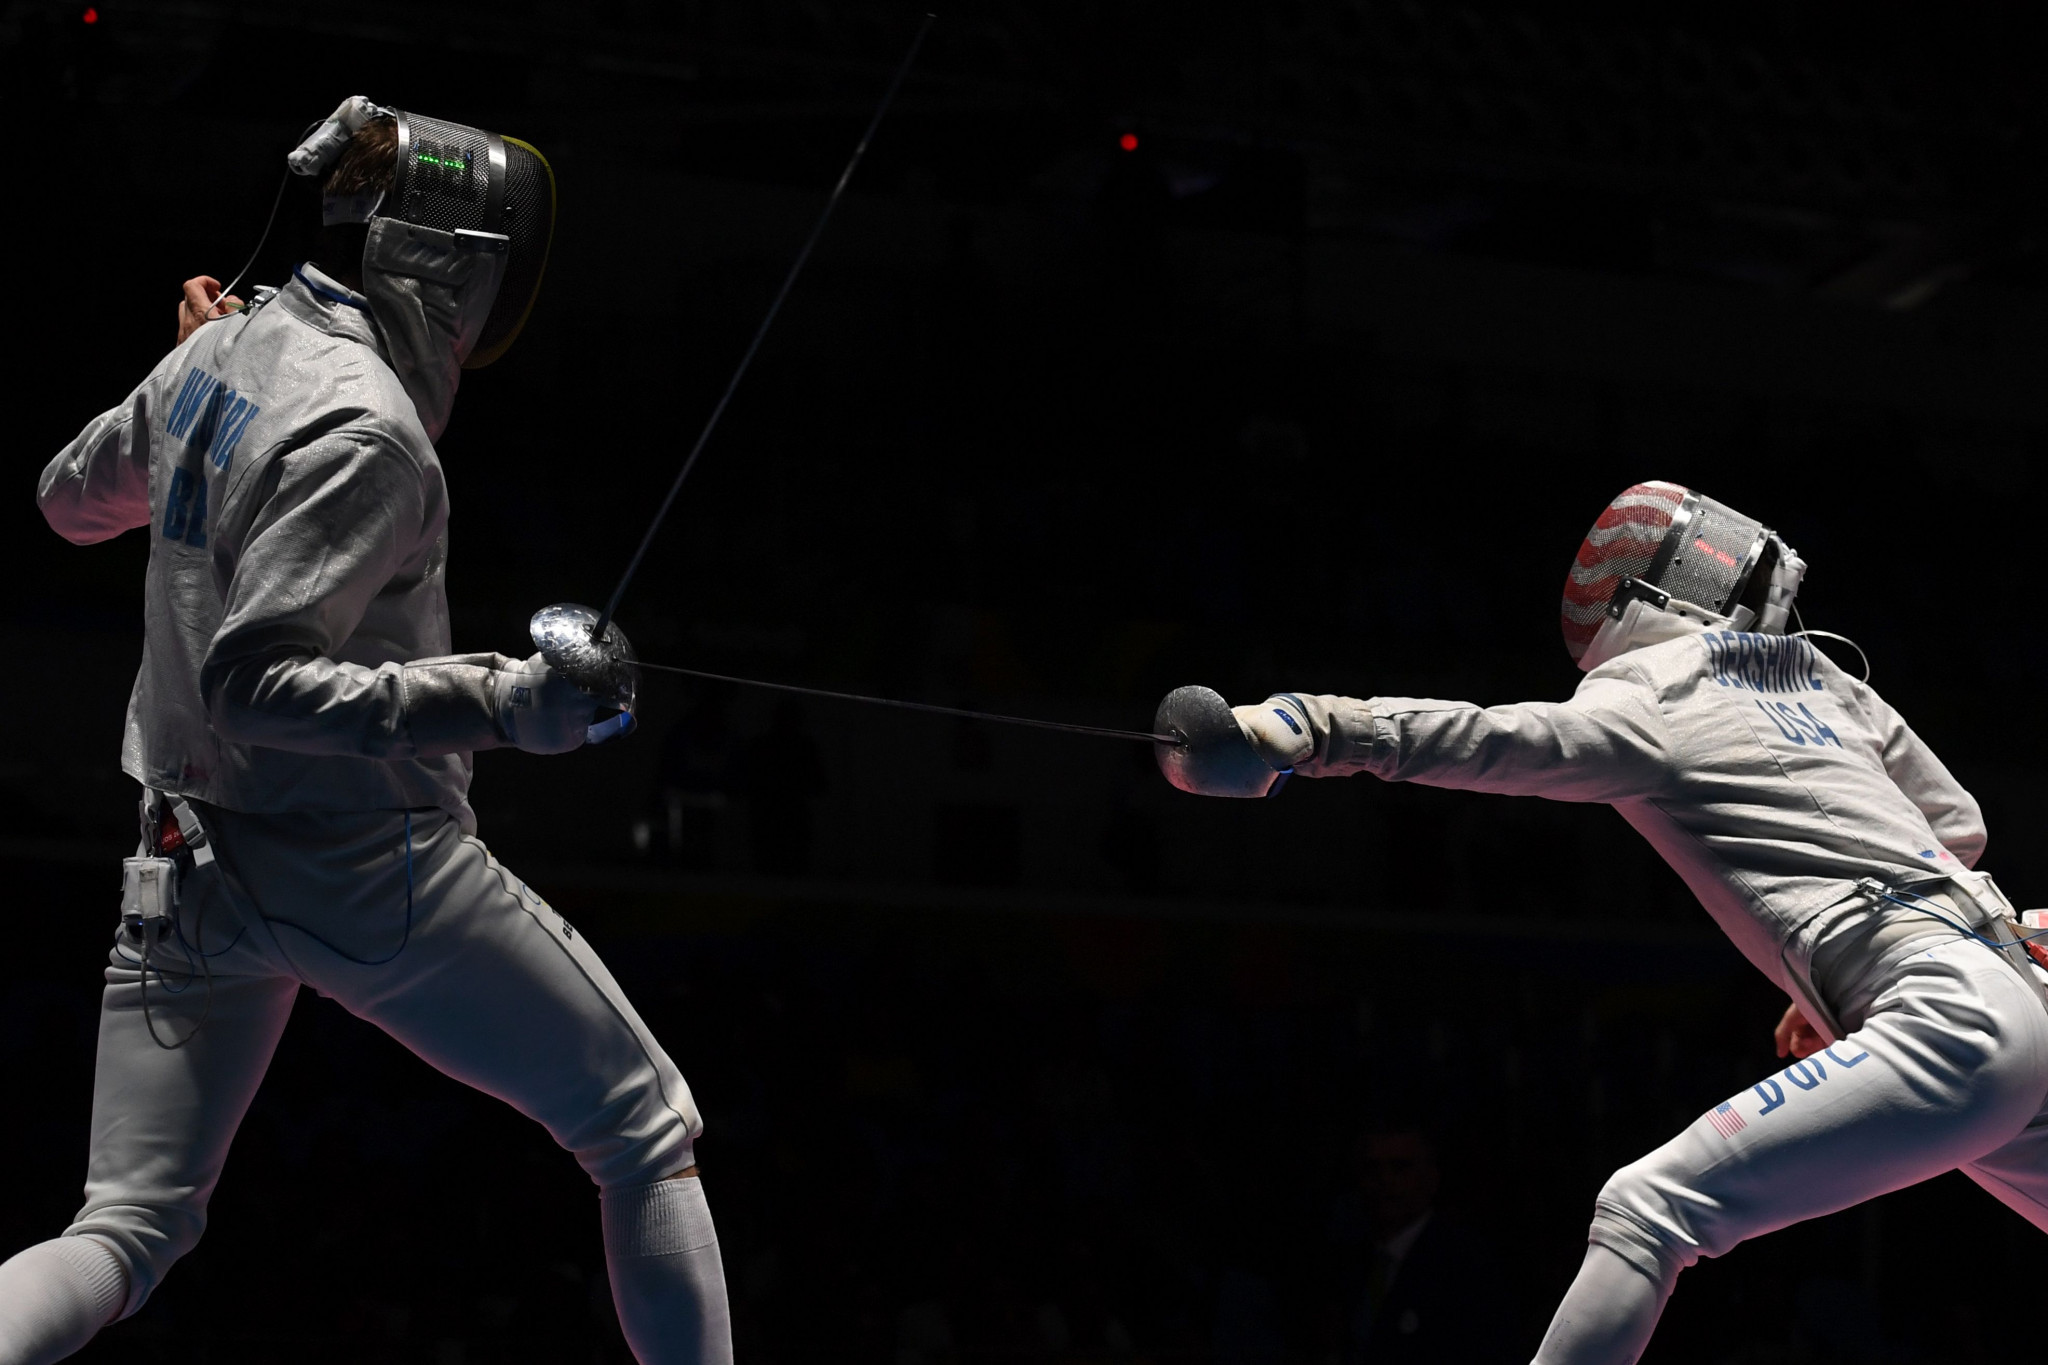 Düsseldorf and Minsk to host European Fencing Championships